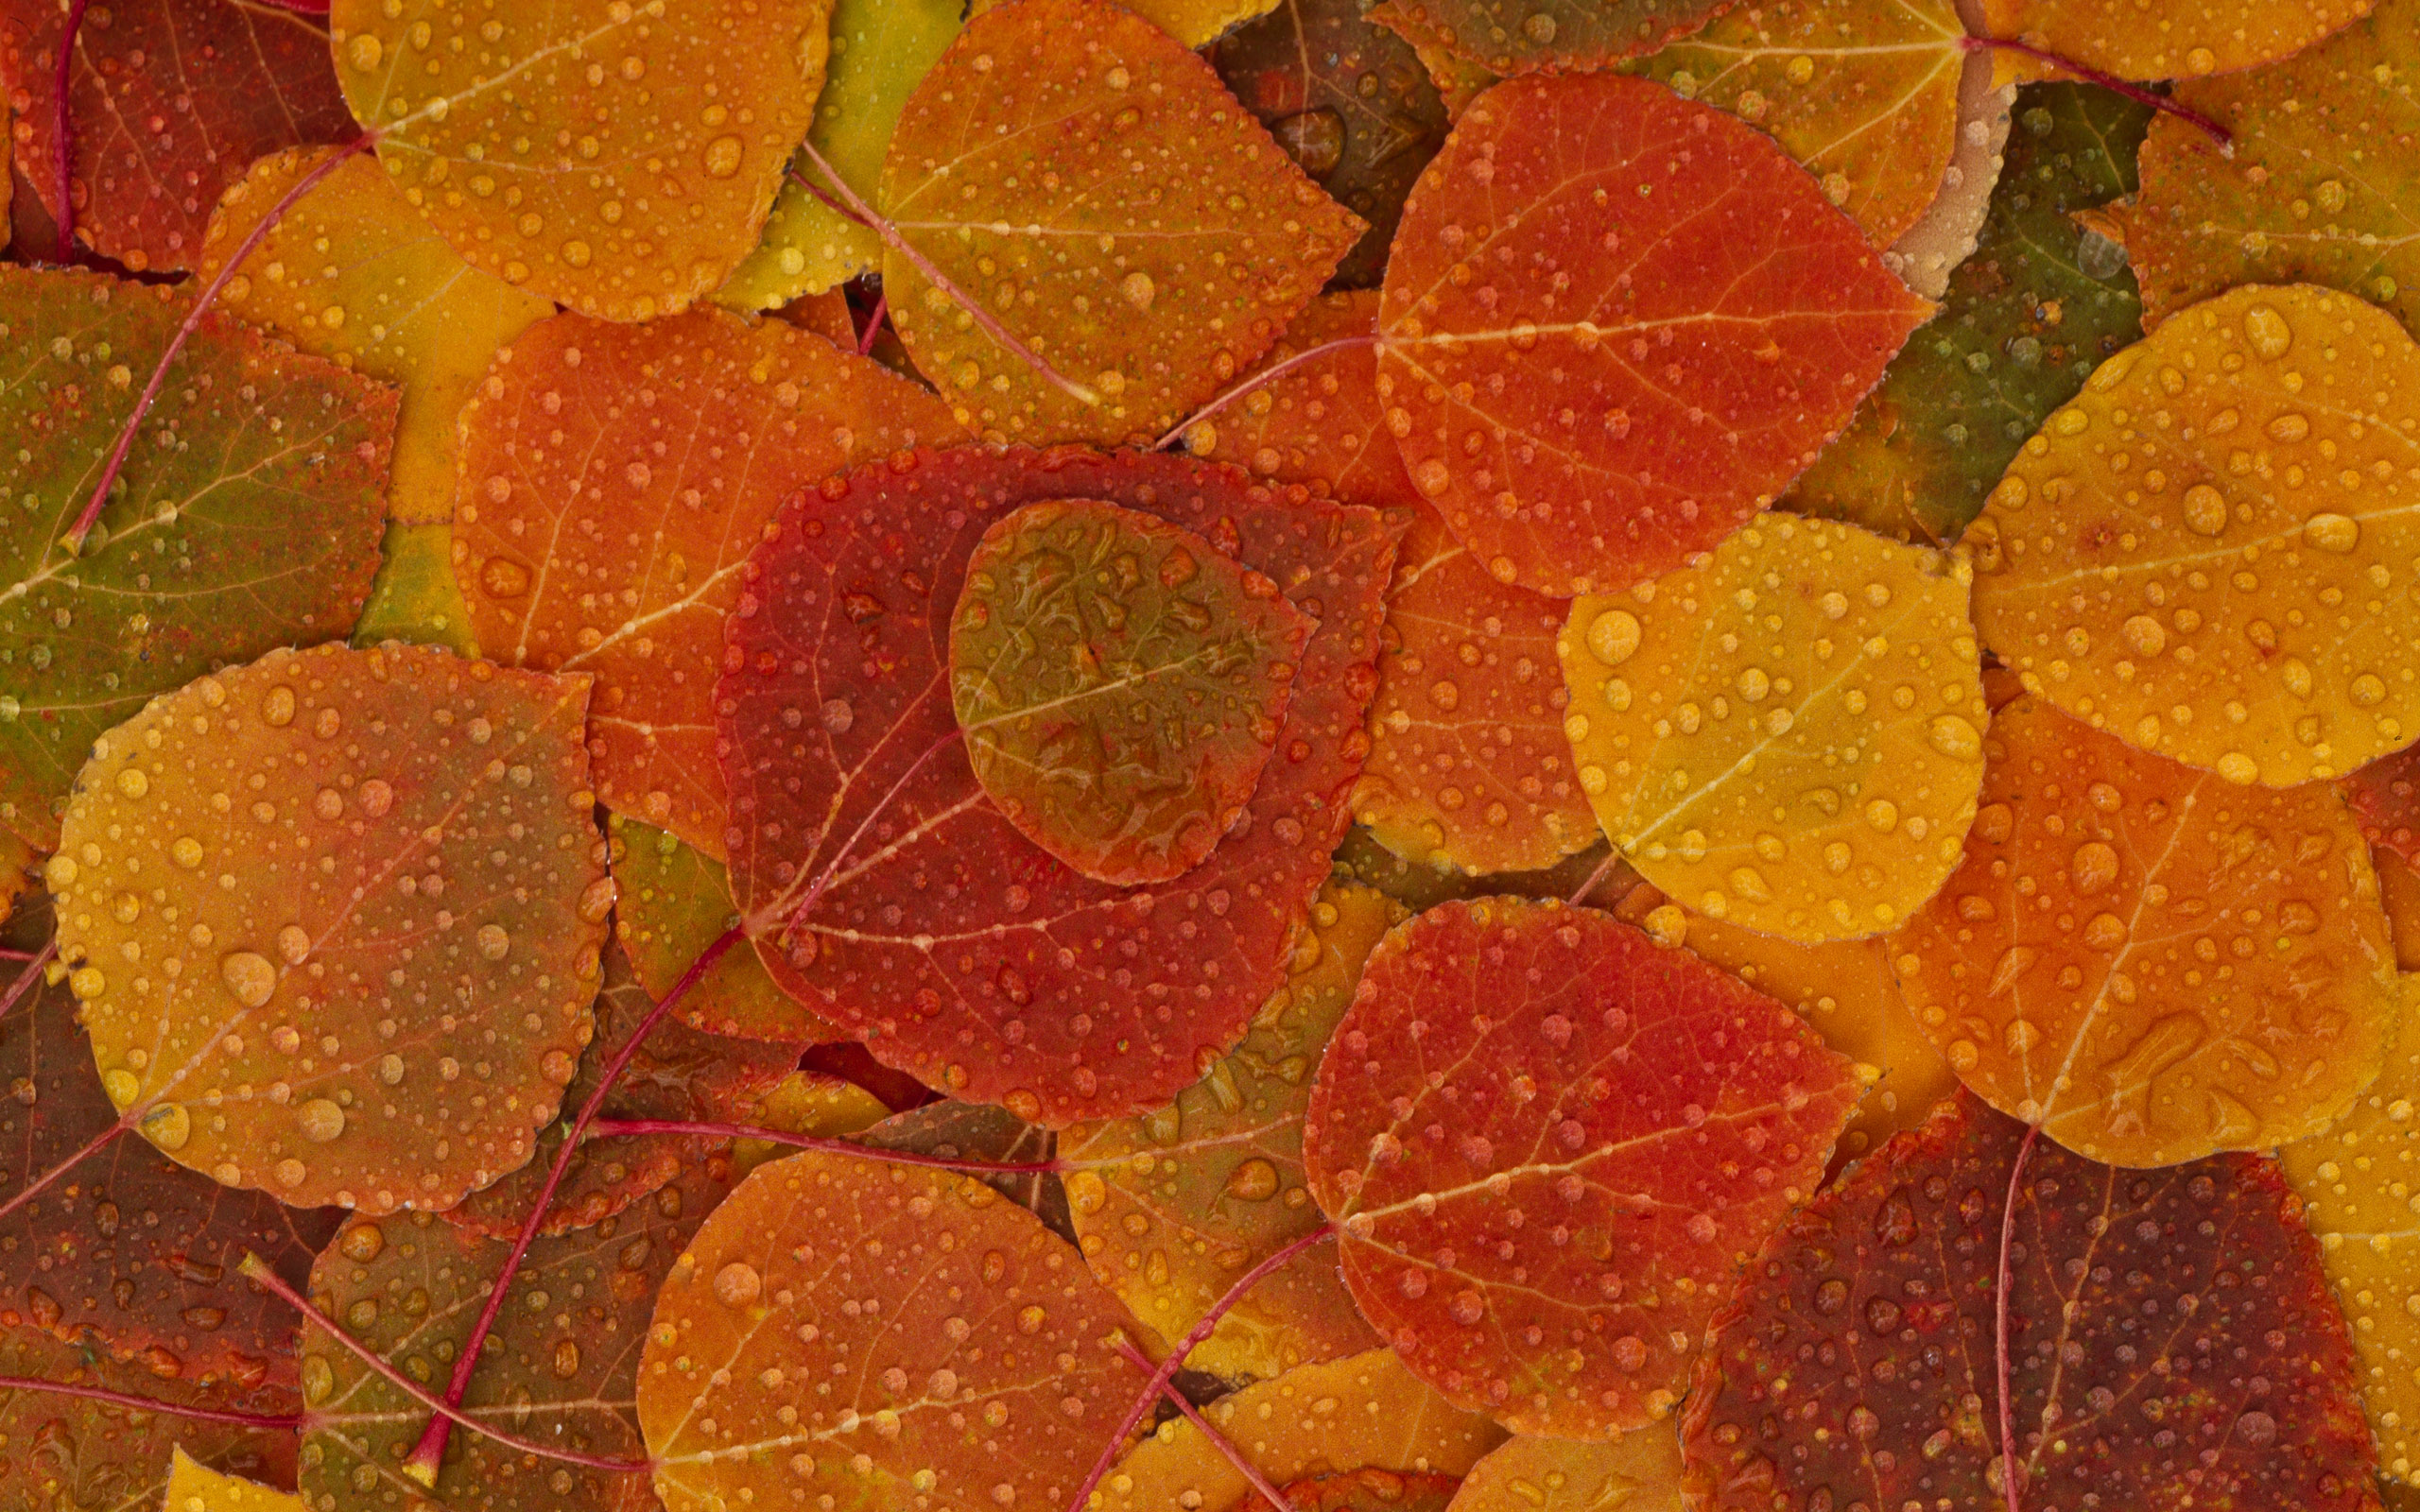 2560x1600 Fall Leaves desktop PC and Mac wallpaper 2560x1600